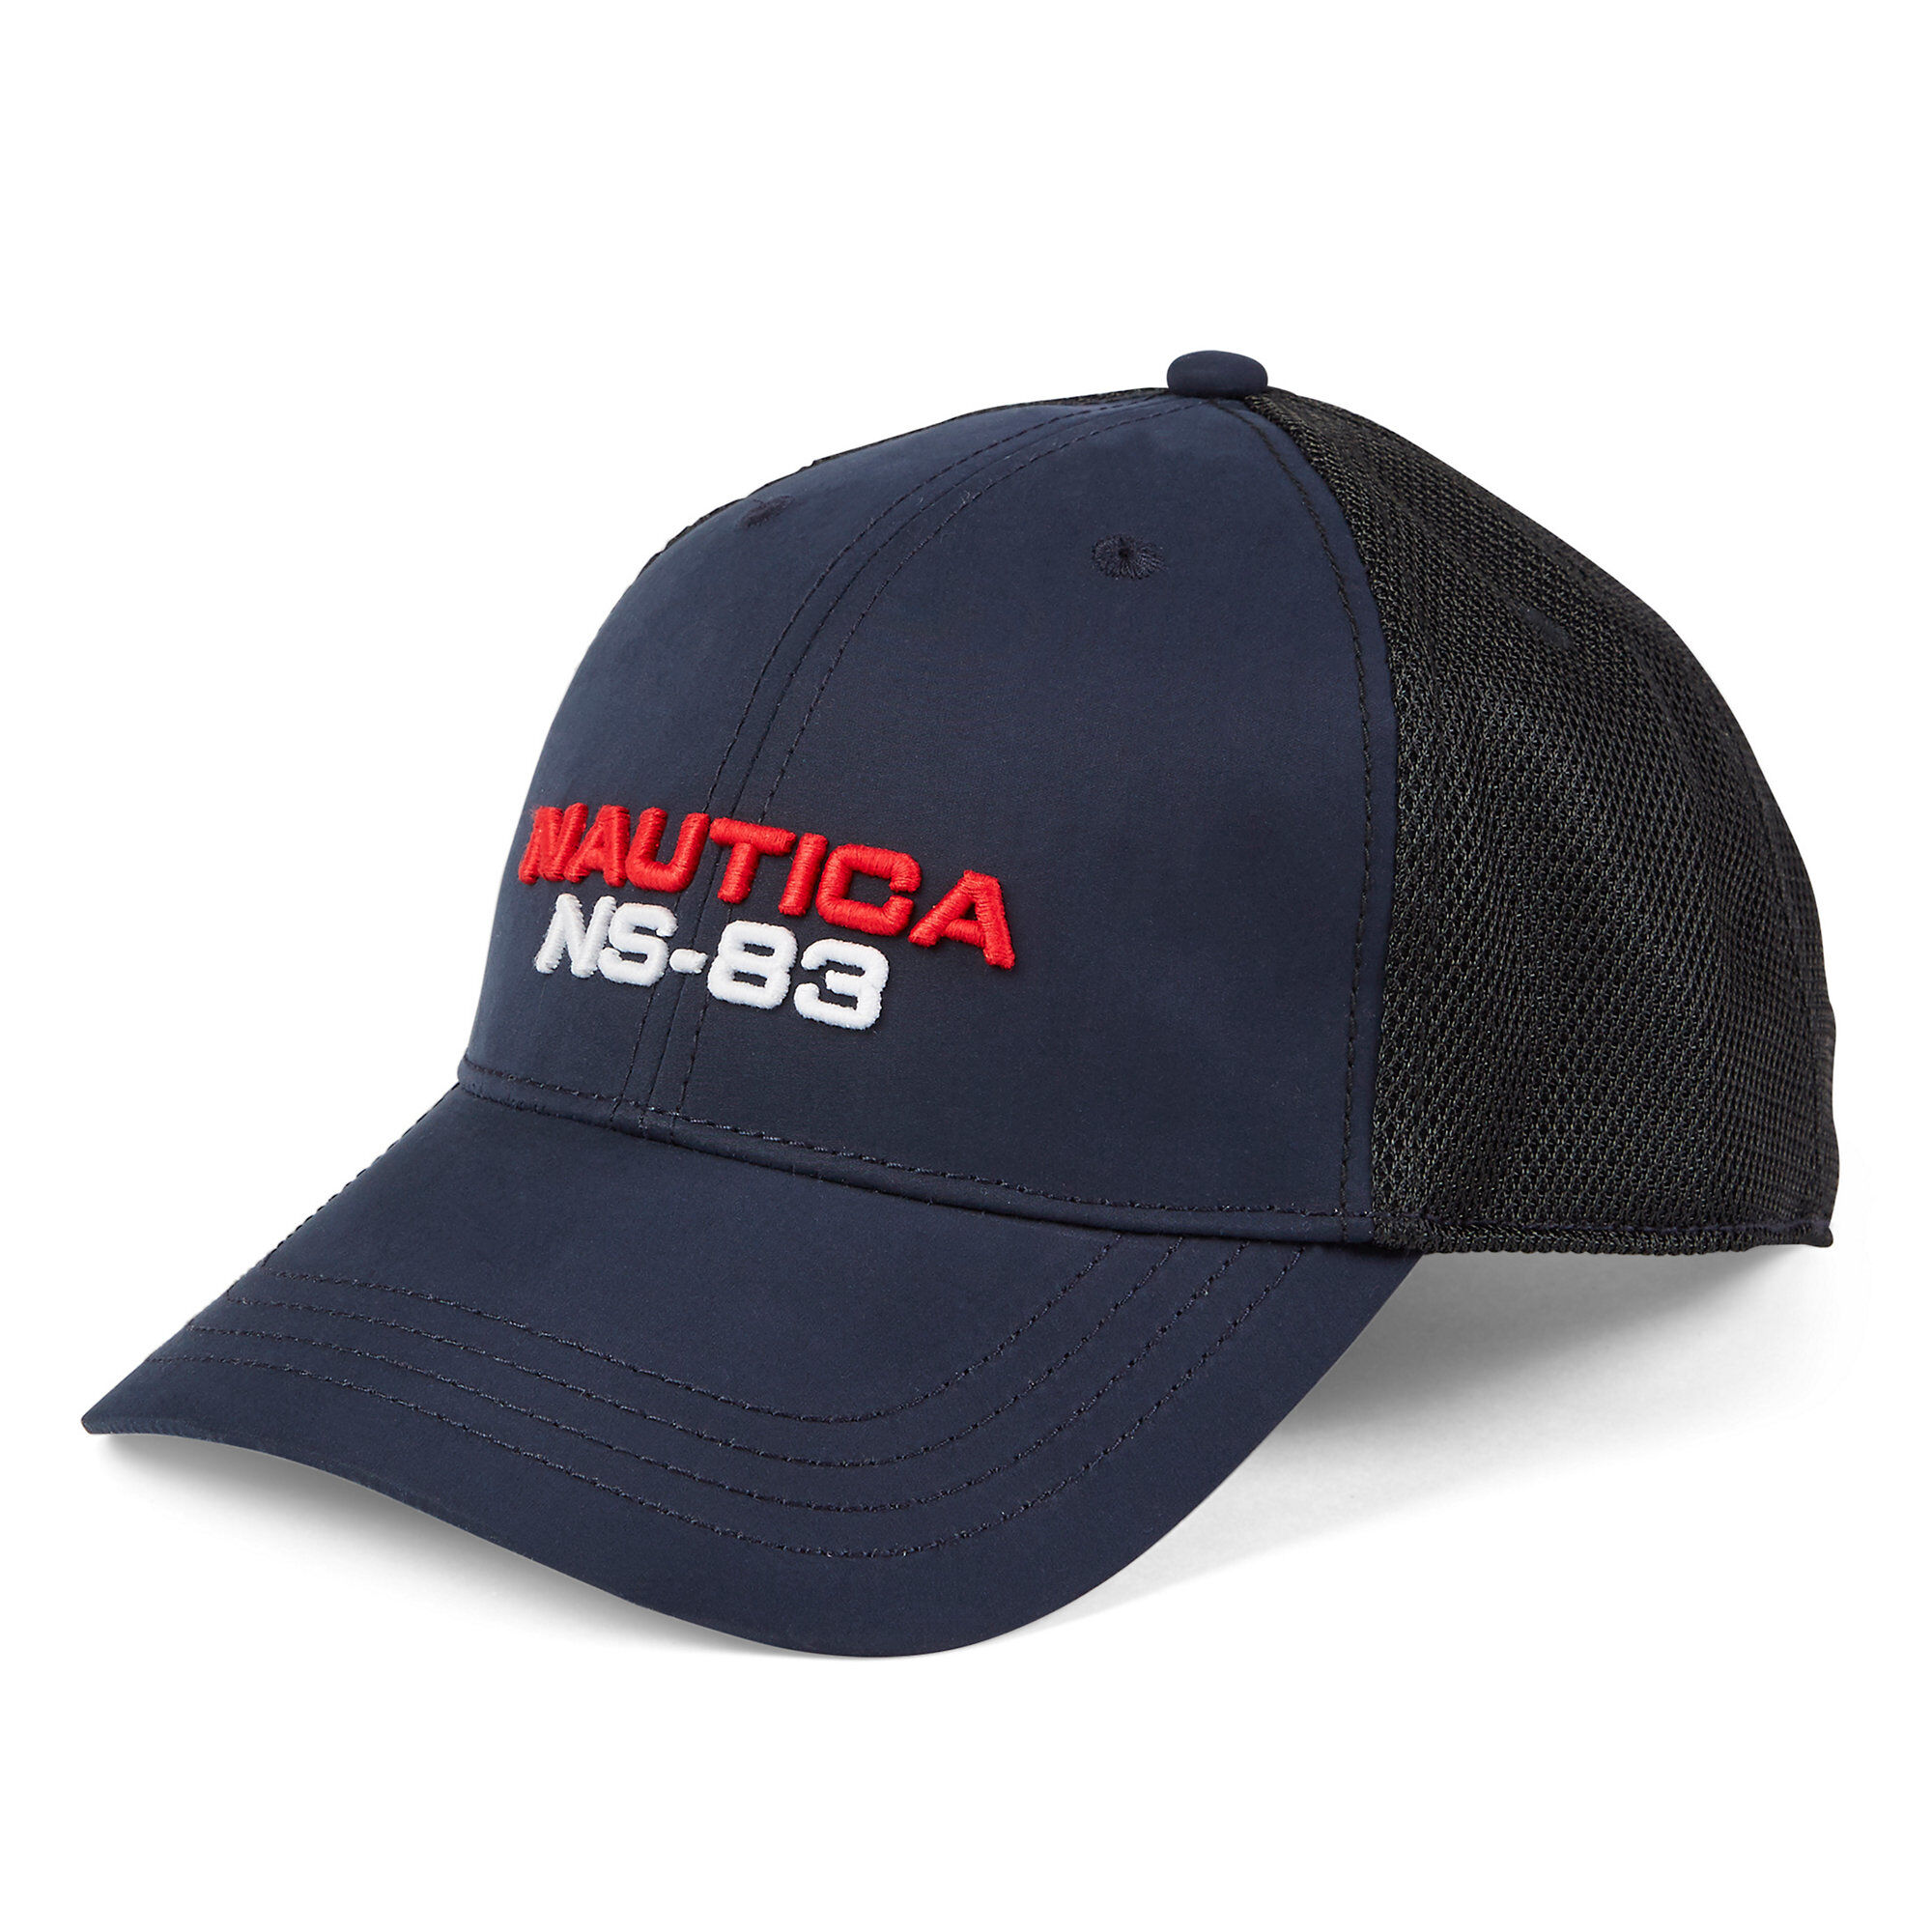 Nautica Mens NS-83 Baseball Cap